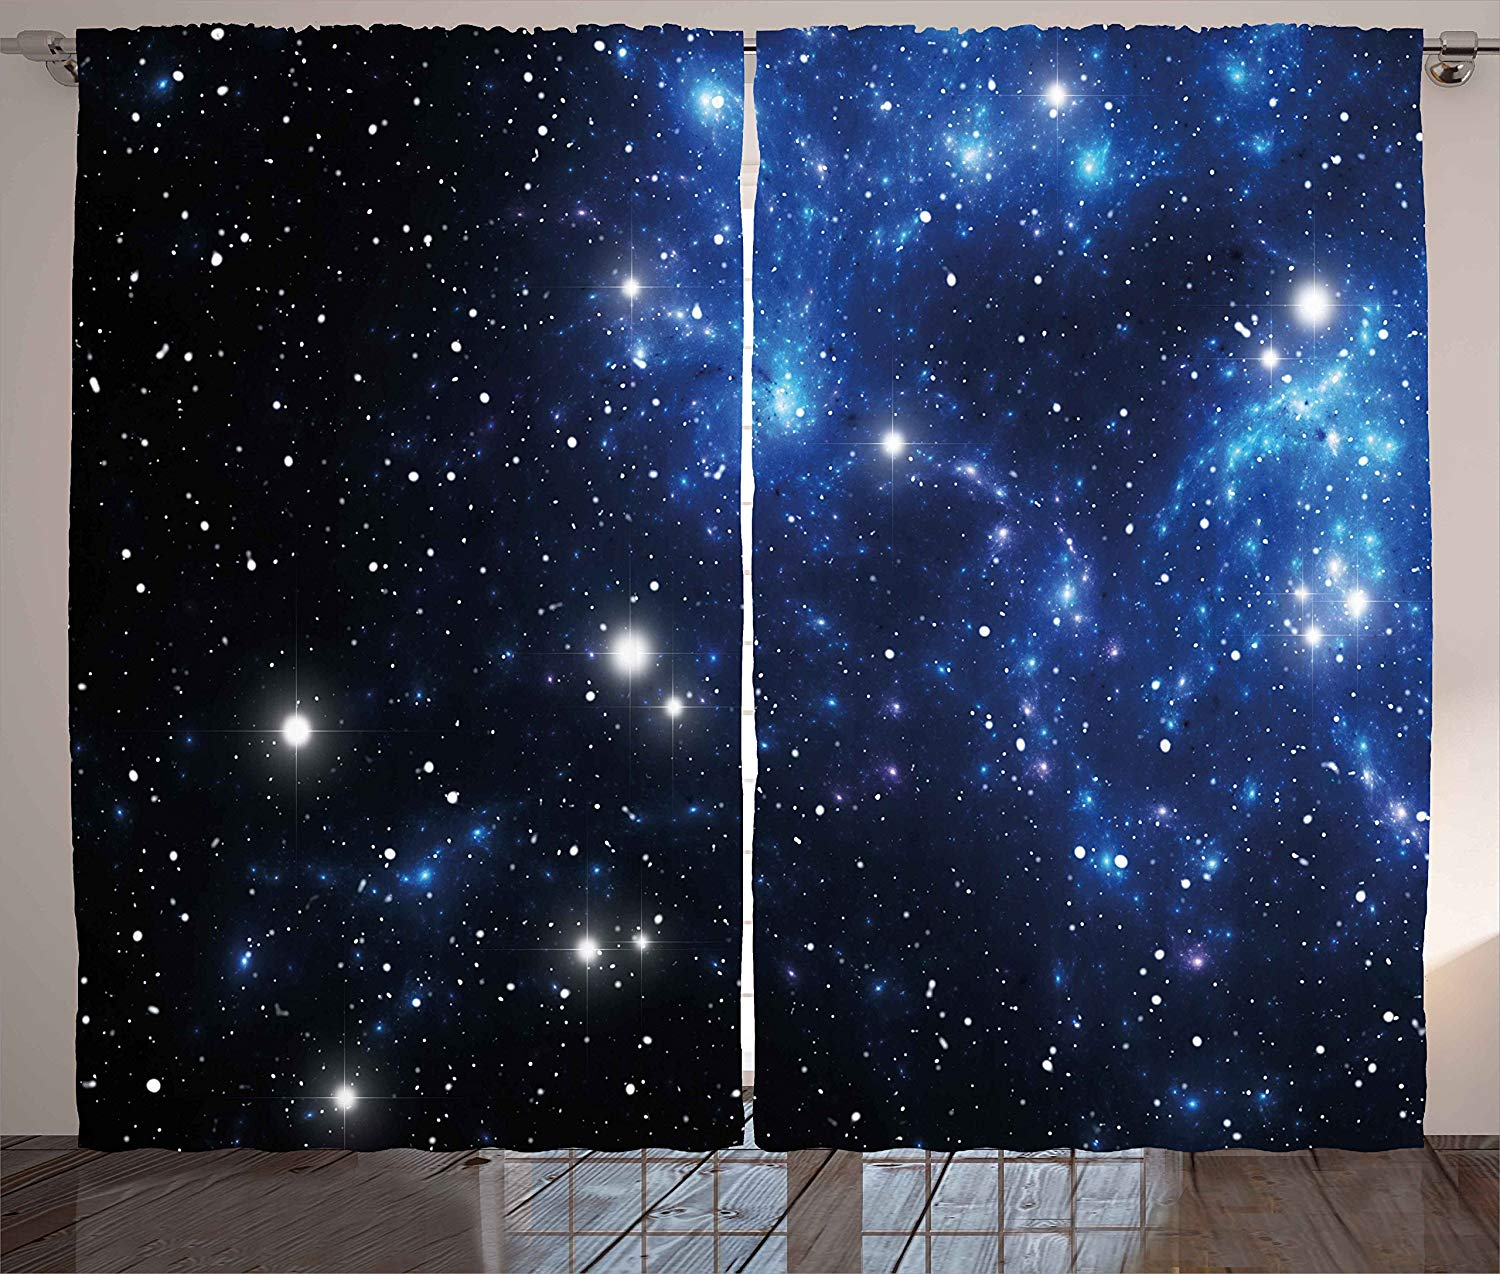 Constellation Curtains Outer Space Star Nebula Astral Cluster Astronomy Theme Galaxy Mystery Living Room Bedroom Window Drapes